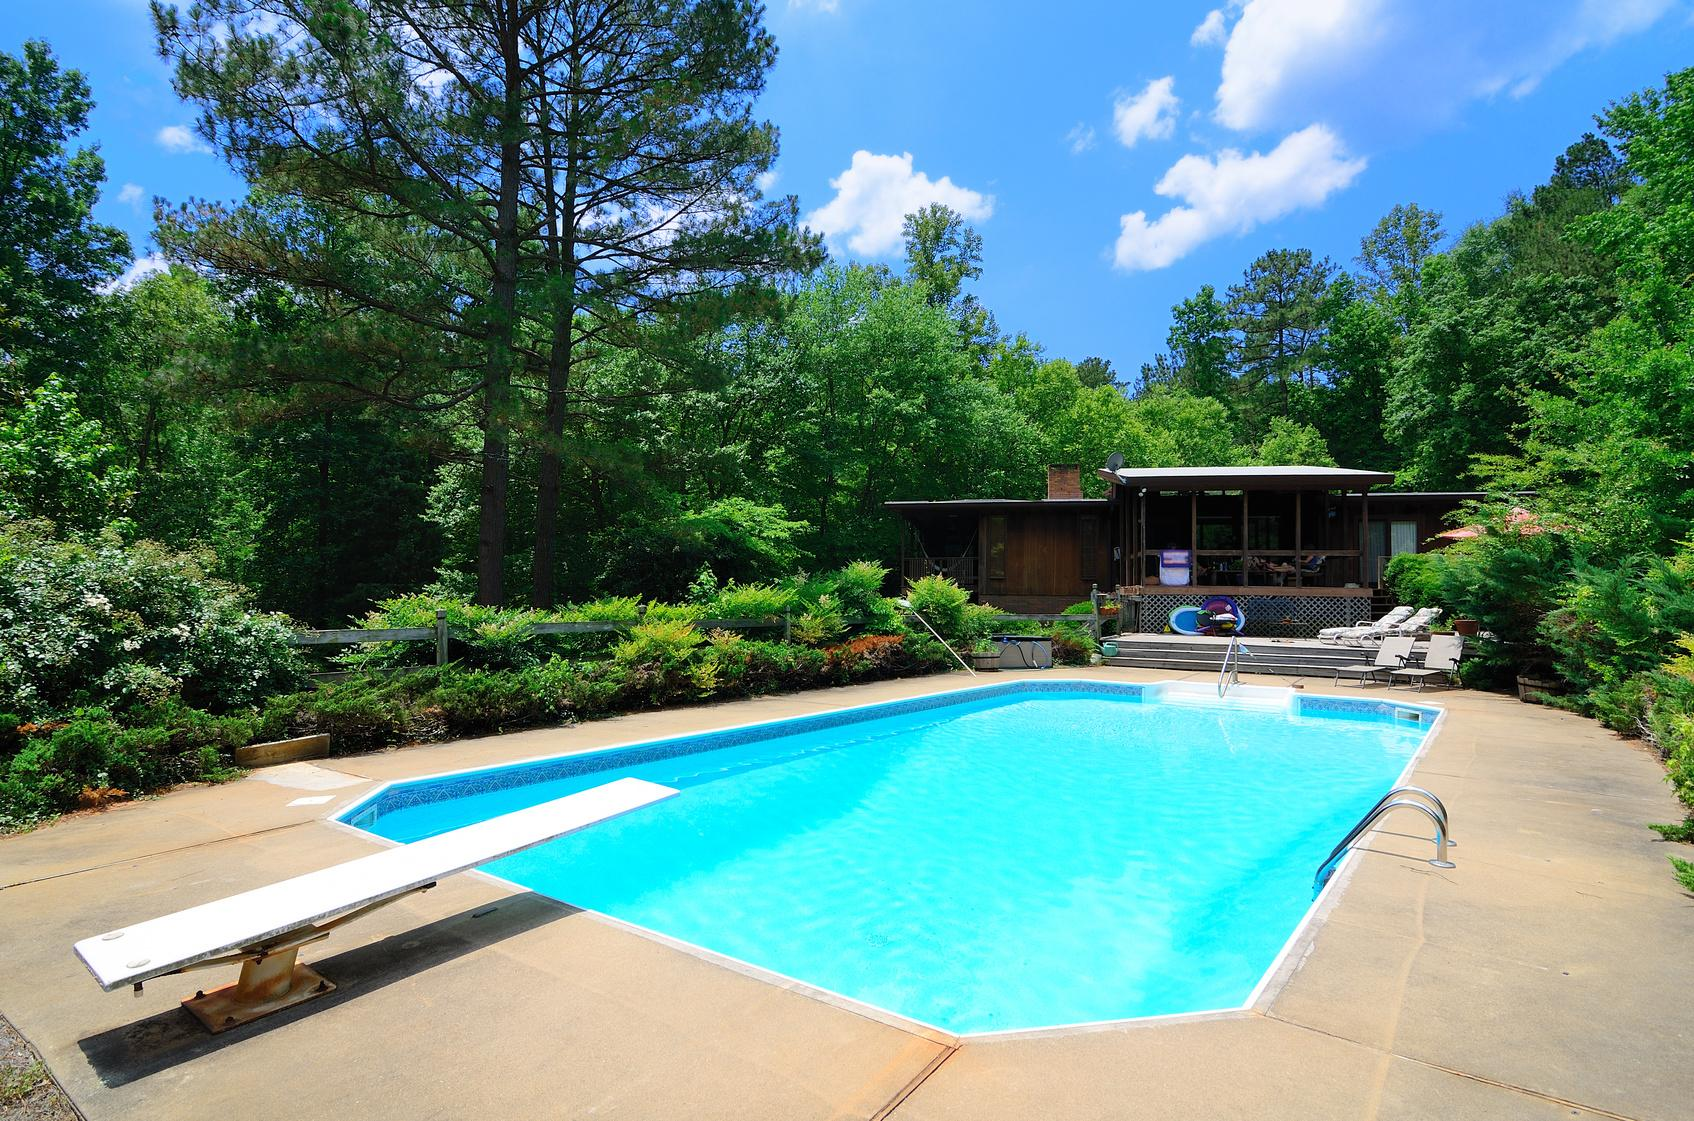 Cool Down in the Pool This Summer: Pool Care Tips